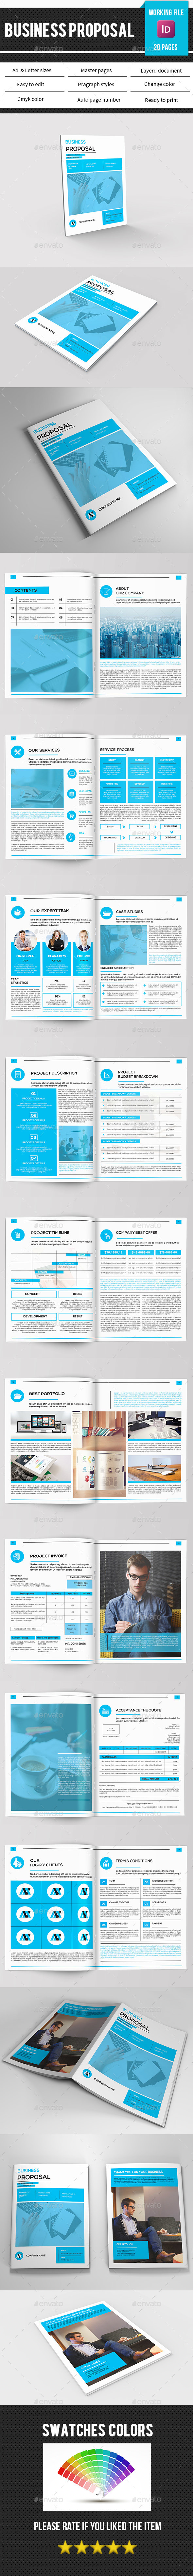 Business Proposal Template-V347 - Proposals & Invoices Stationery